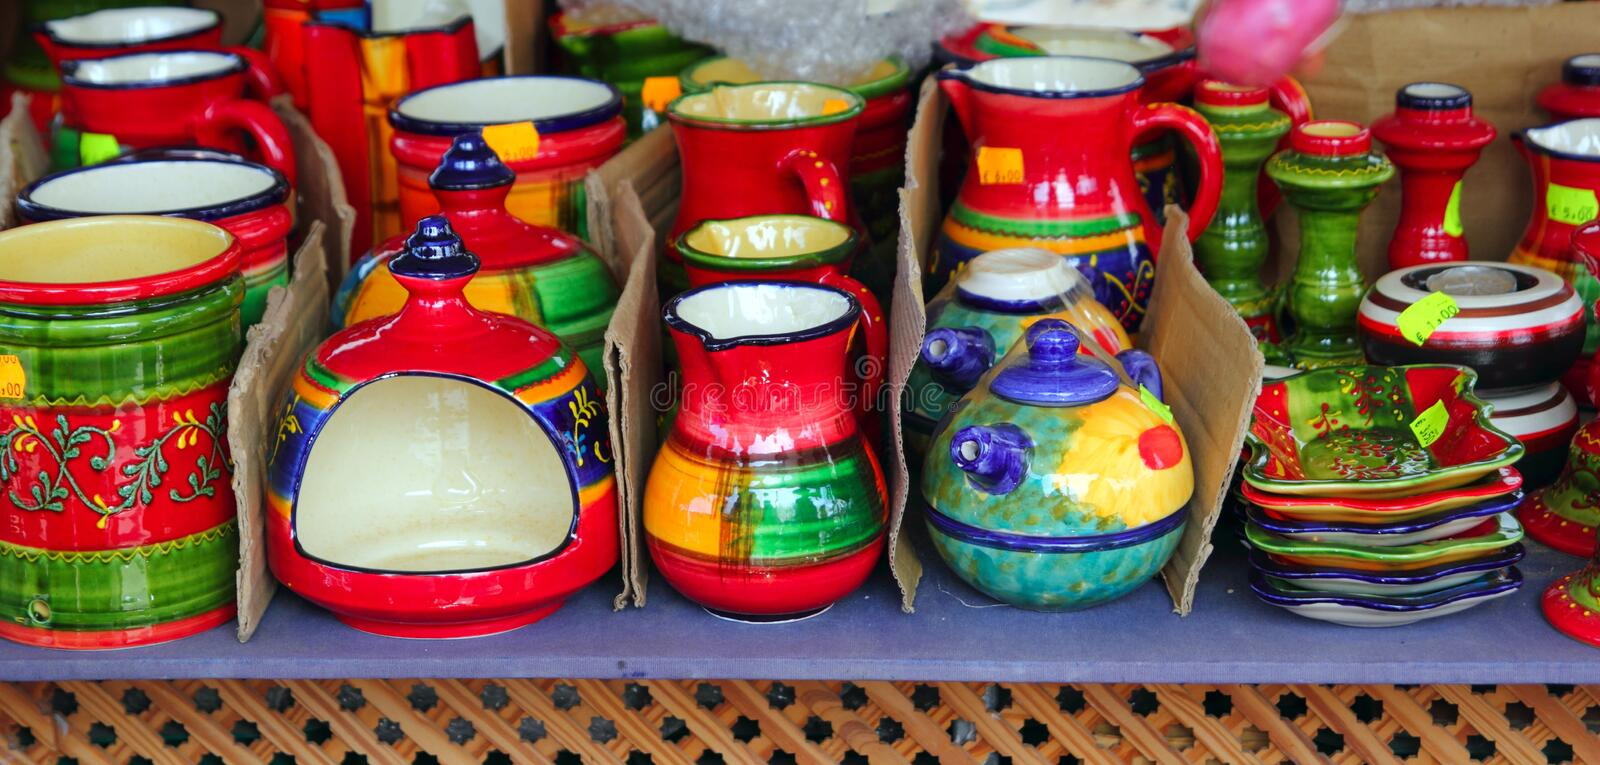 Download Colorful Ceramics Pottery Painted Vivid Color Clay Stock Photo - Image: 20671684